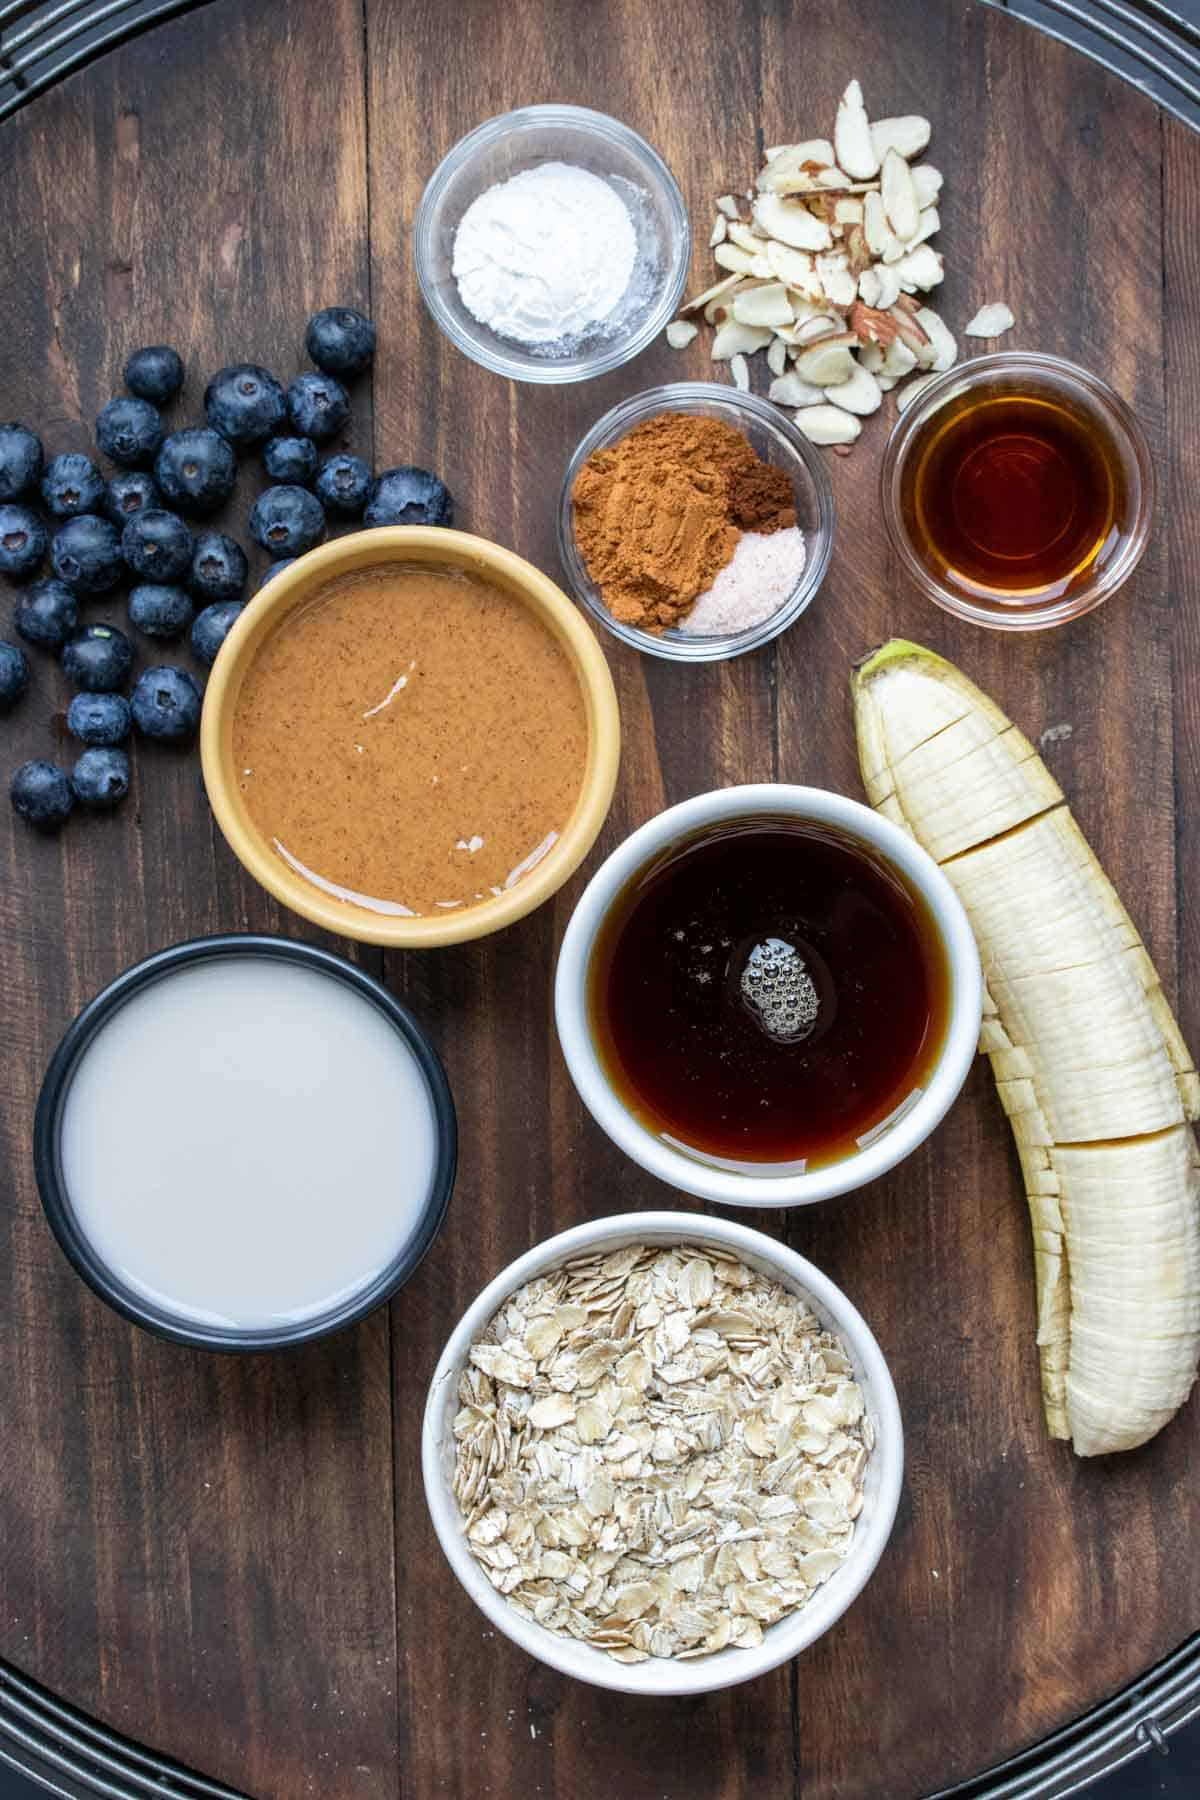 Ingredients needed to make a blueberry and banana baked oatmeal sitting on a wooden surface